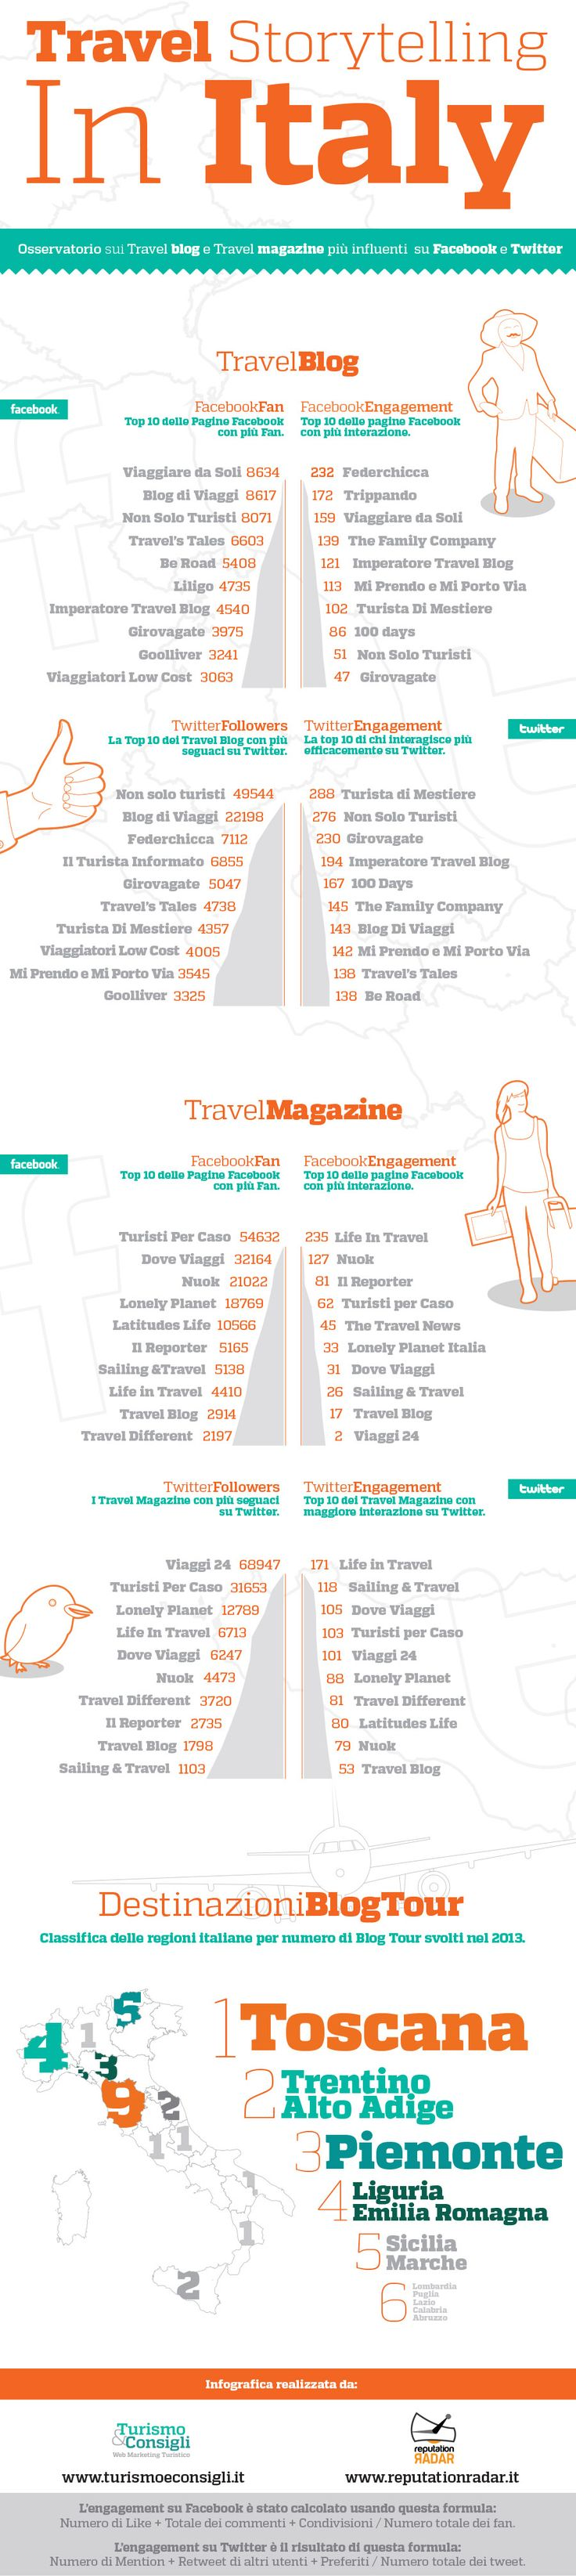 Travel Storytelling in Italy, l'infografica sui blog e magazine più social